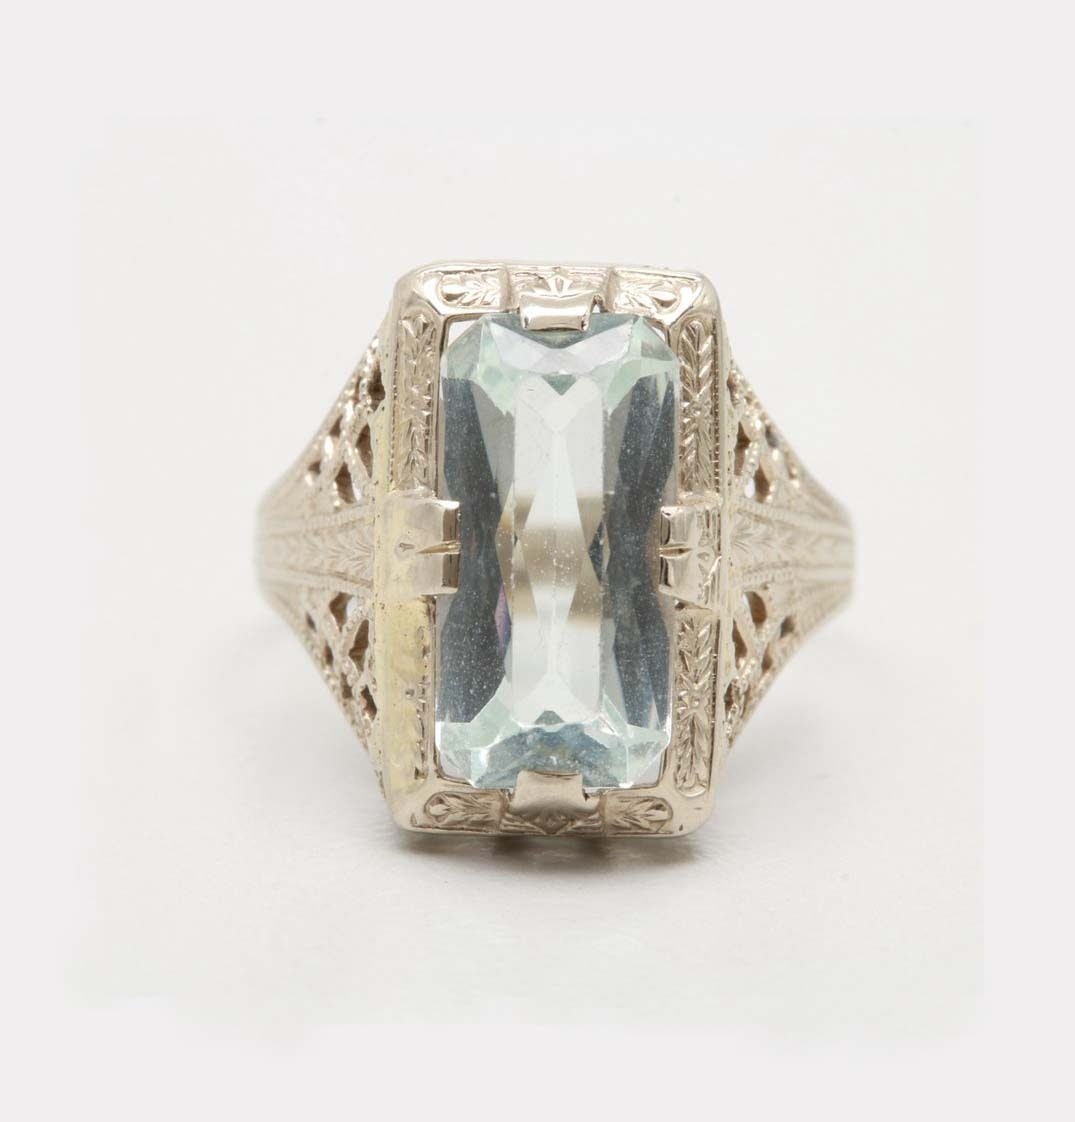 Fine Jewelry, Watches, Sterling Silver & More